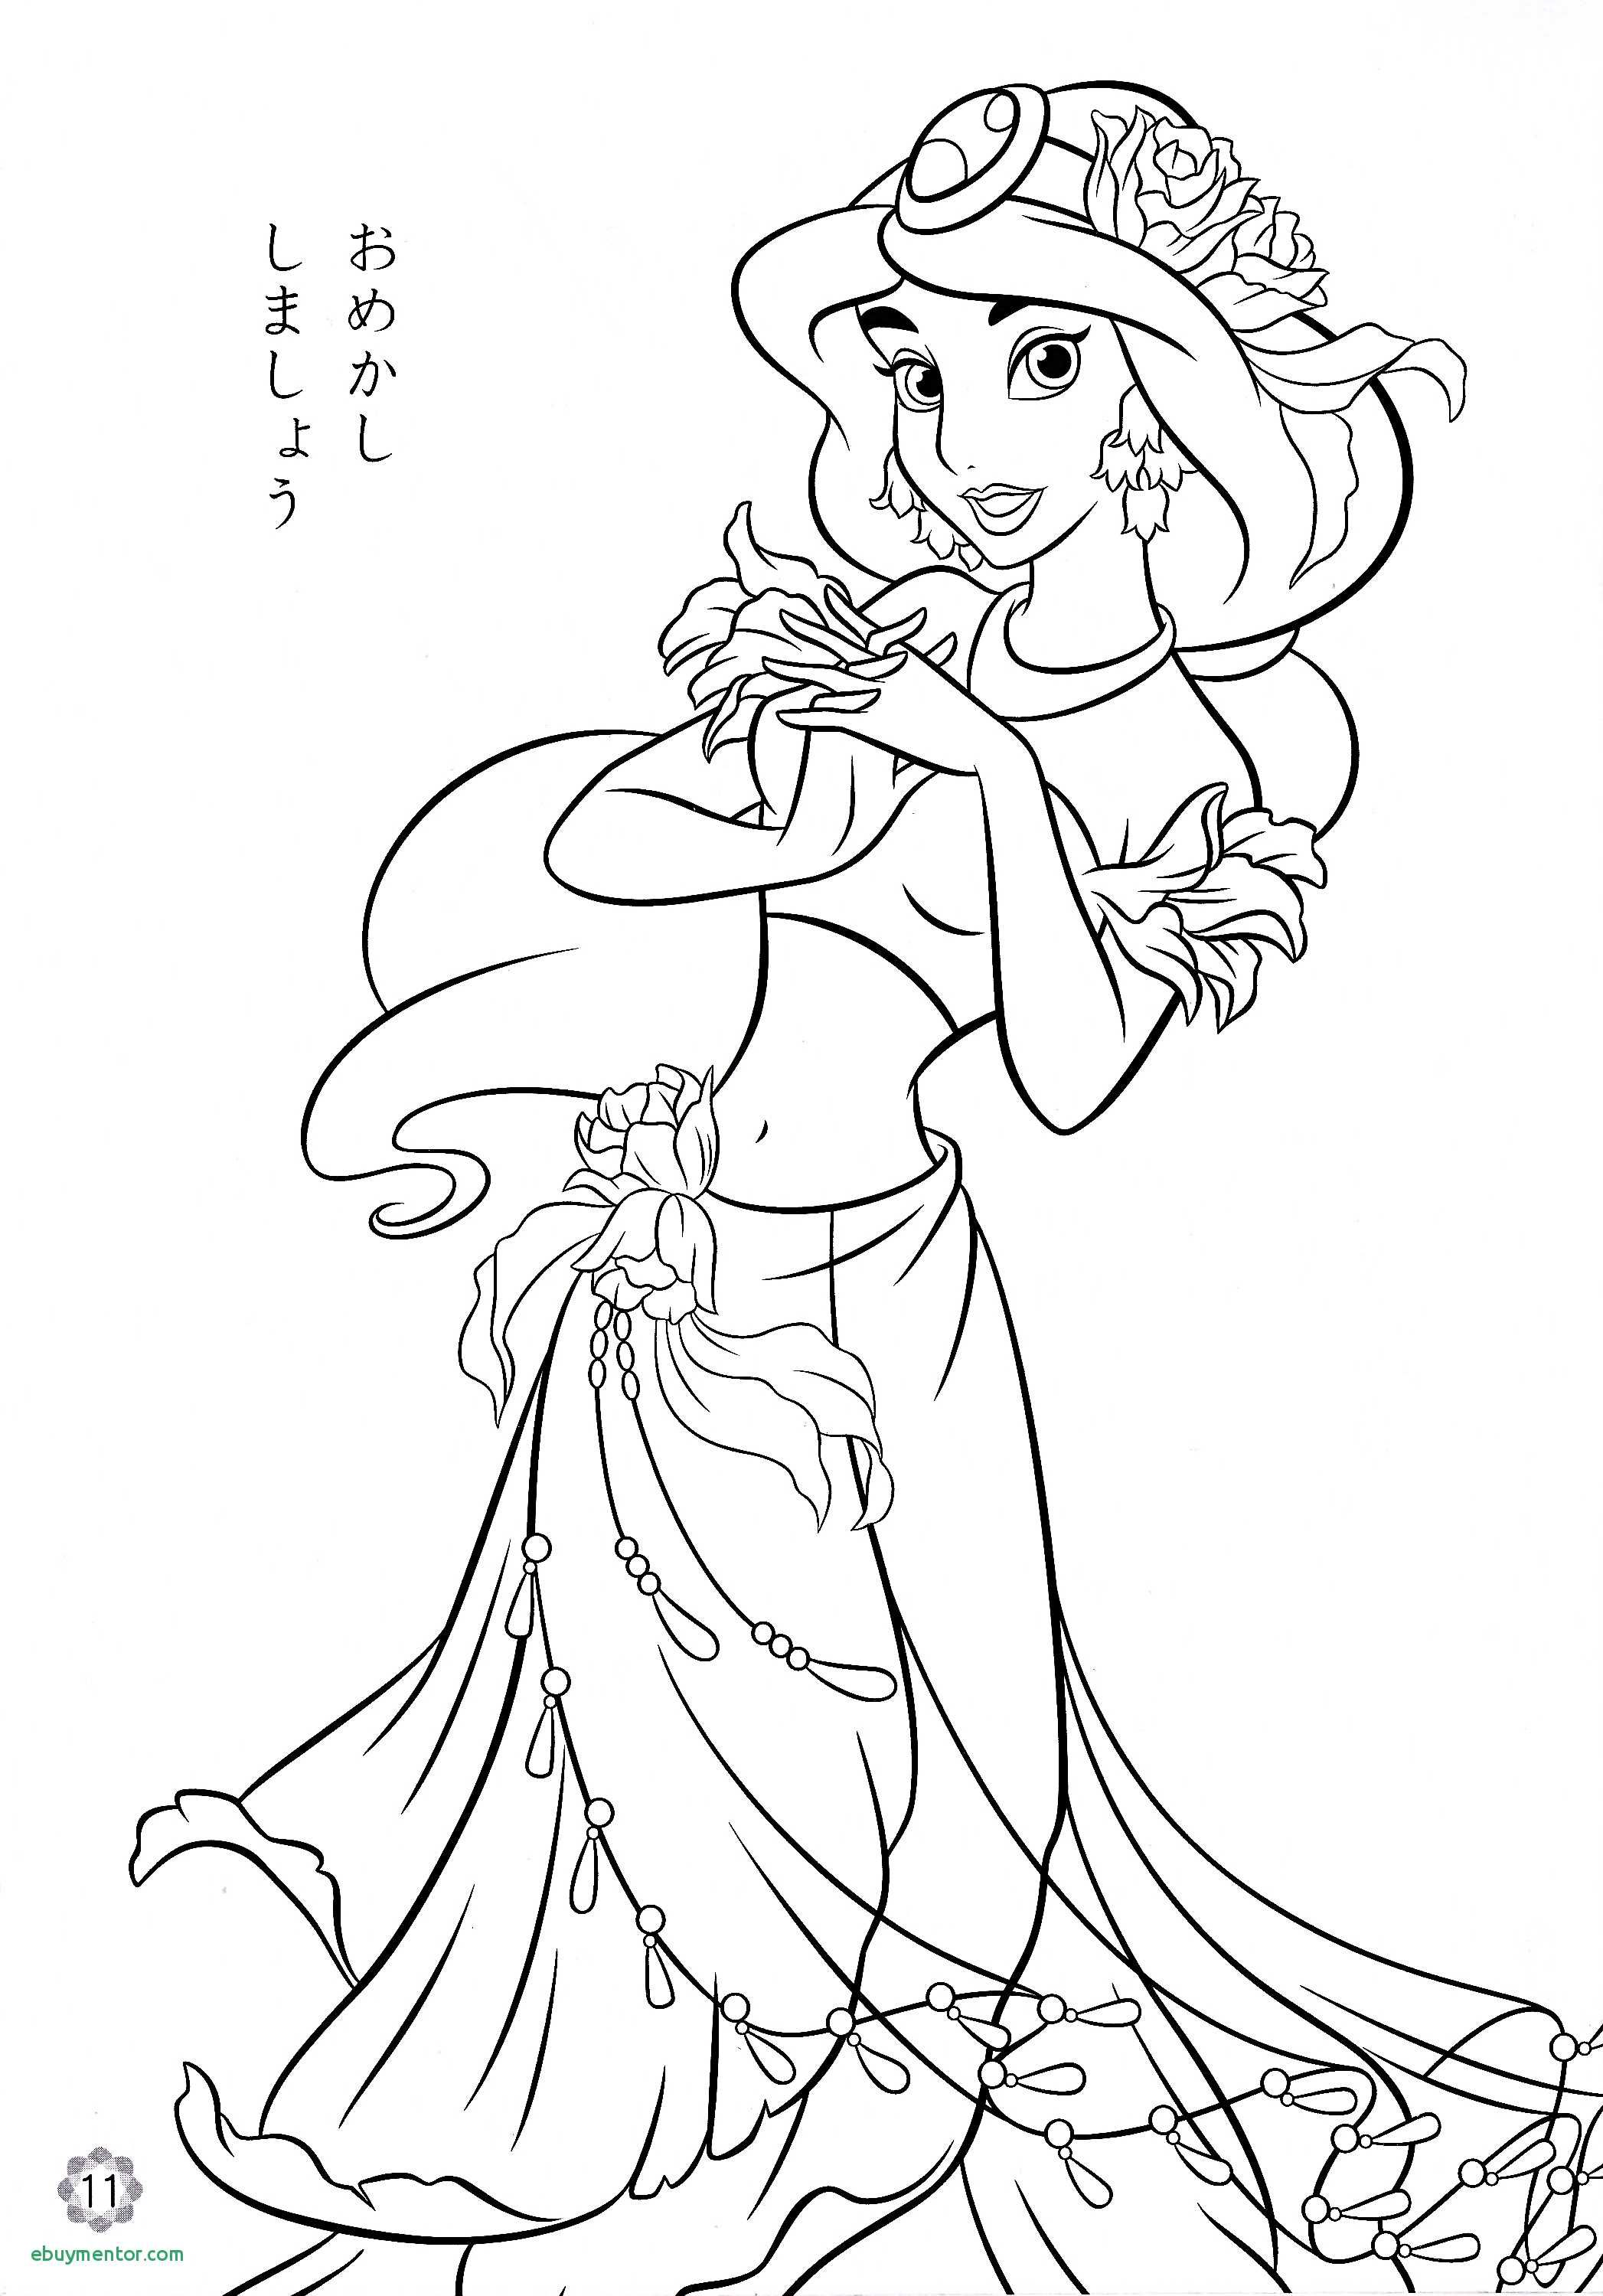 Disney princess coloring pages 820 1060 lovely of chibi within free